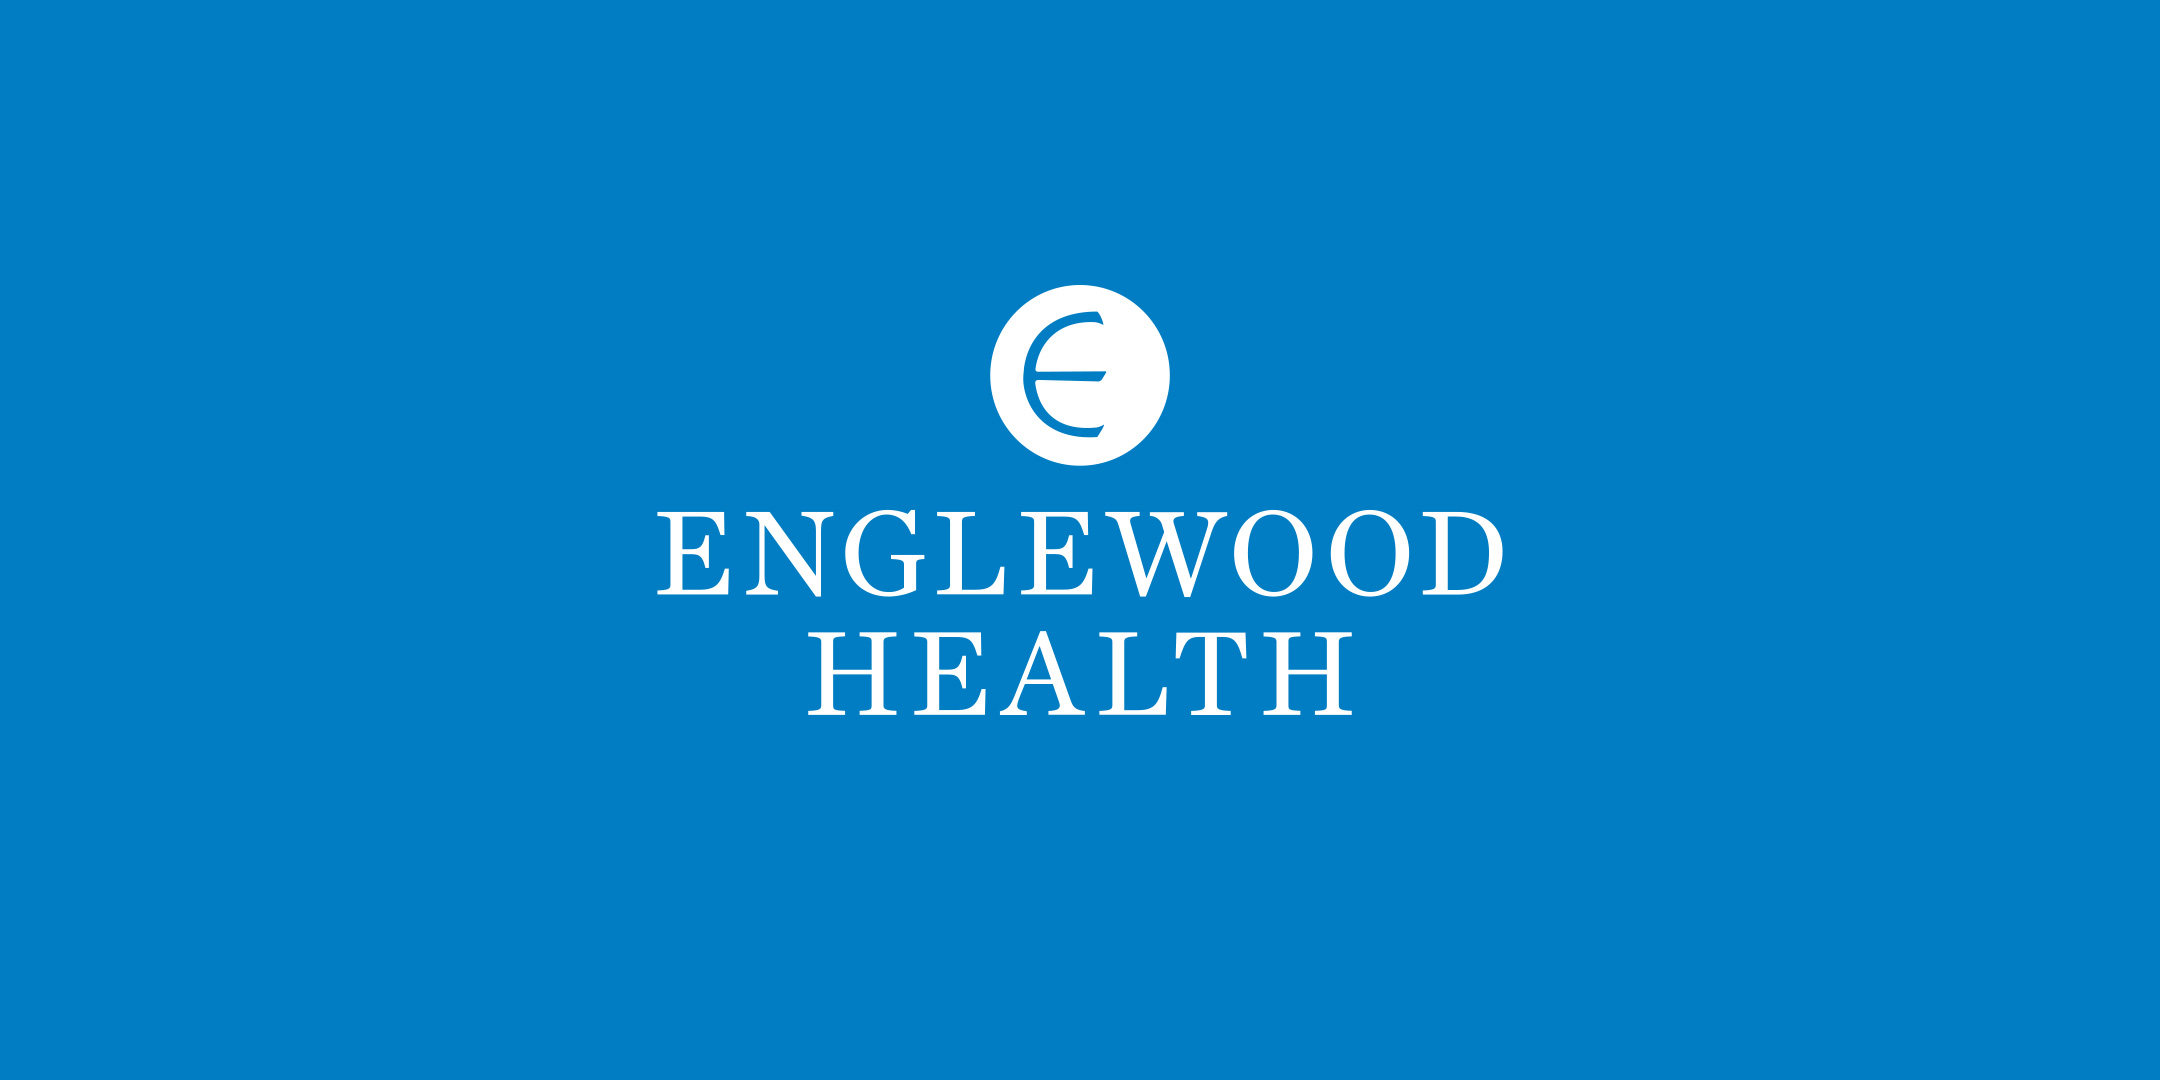 More info: Englewood Health Virtual Community Meeting